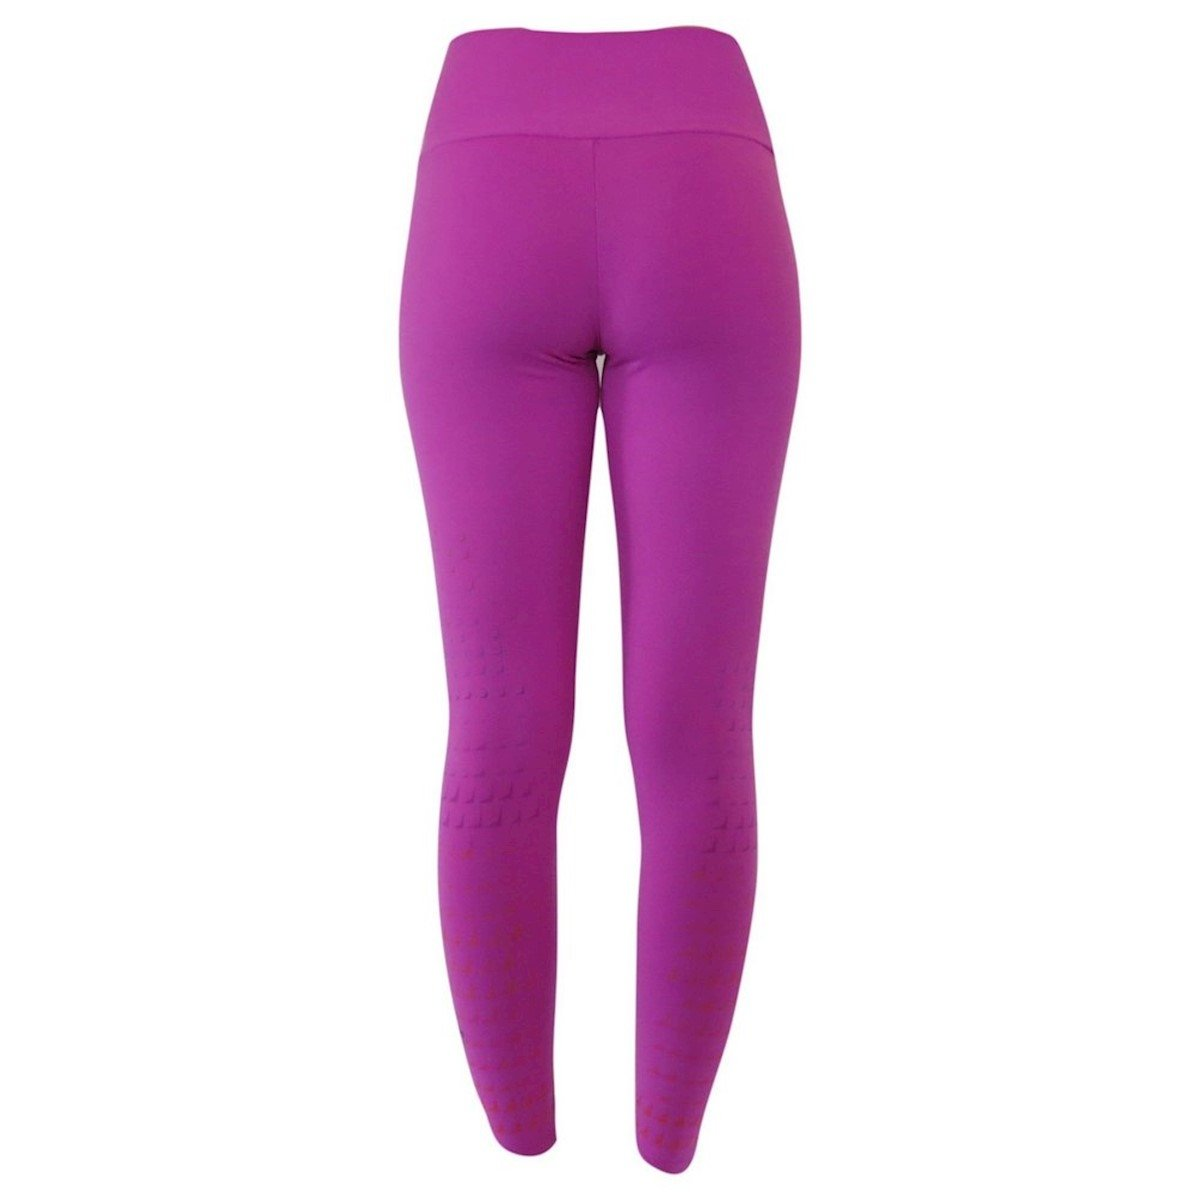 Feminina Giro Legging Rosa Alto Silk Supplex Legging Supplex Fit Uyqvwx0O